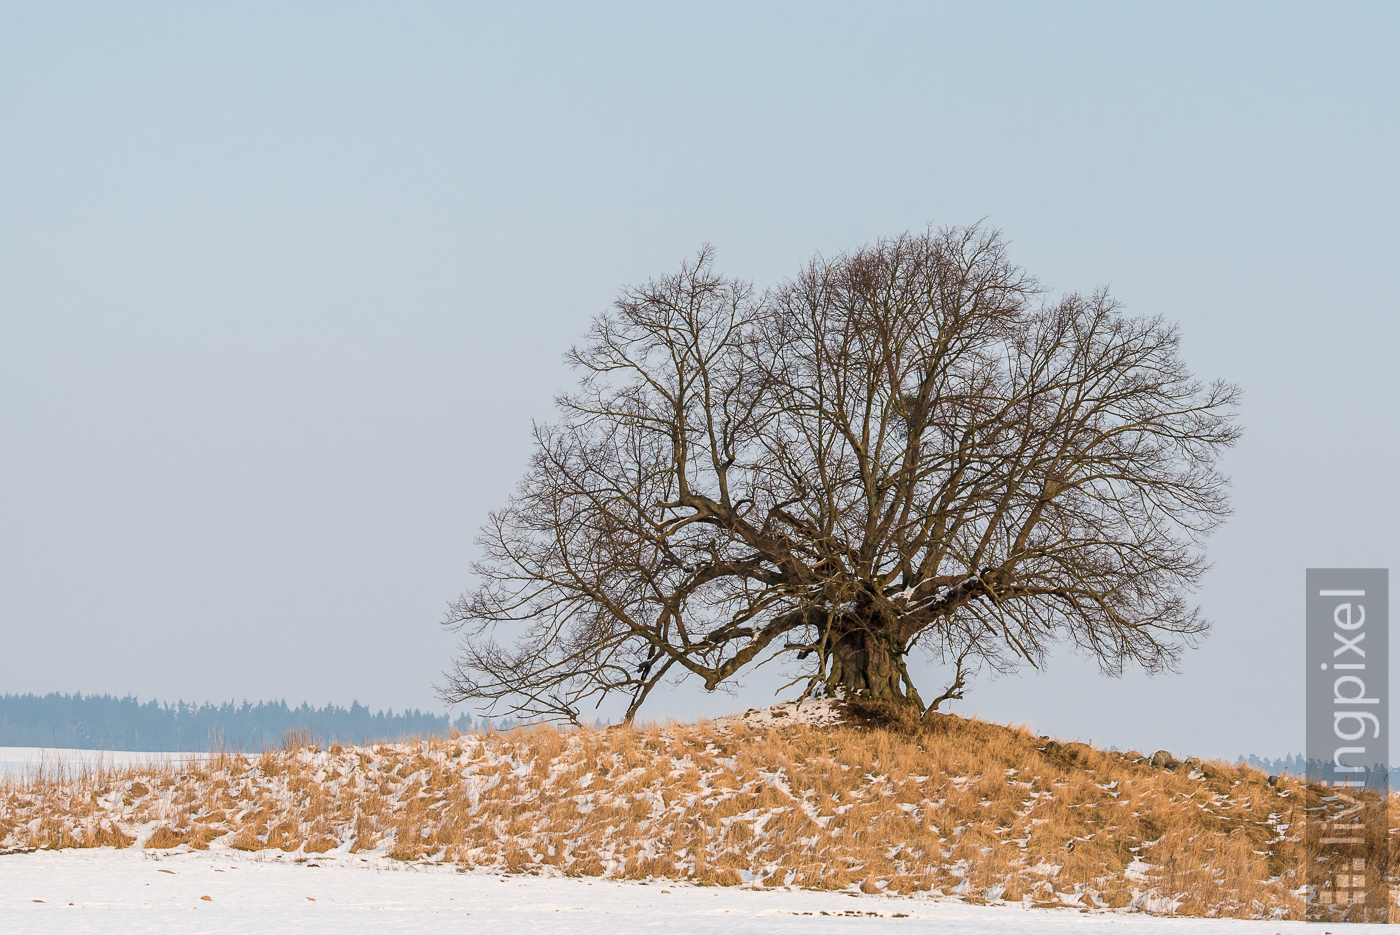 Linden tree in winter season